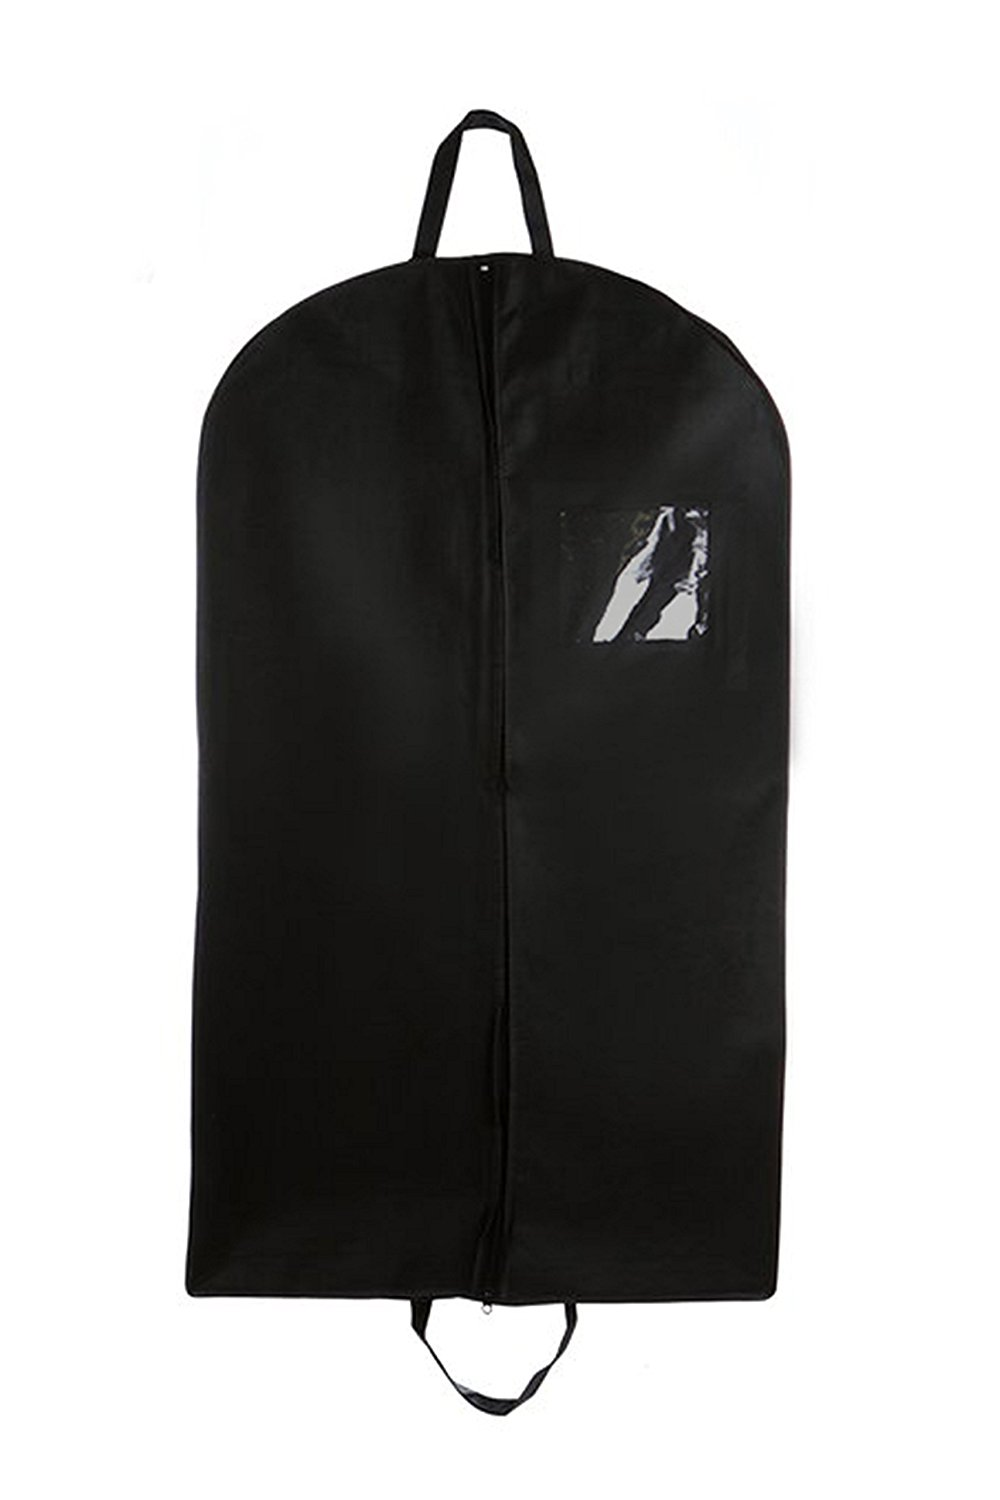 Wholesale Professional Factory suit garment bag with pvc pocket